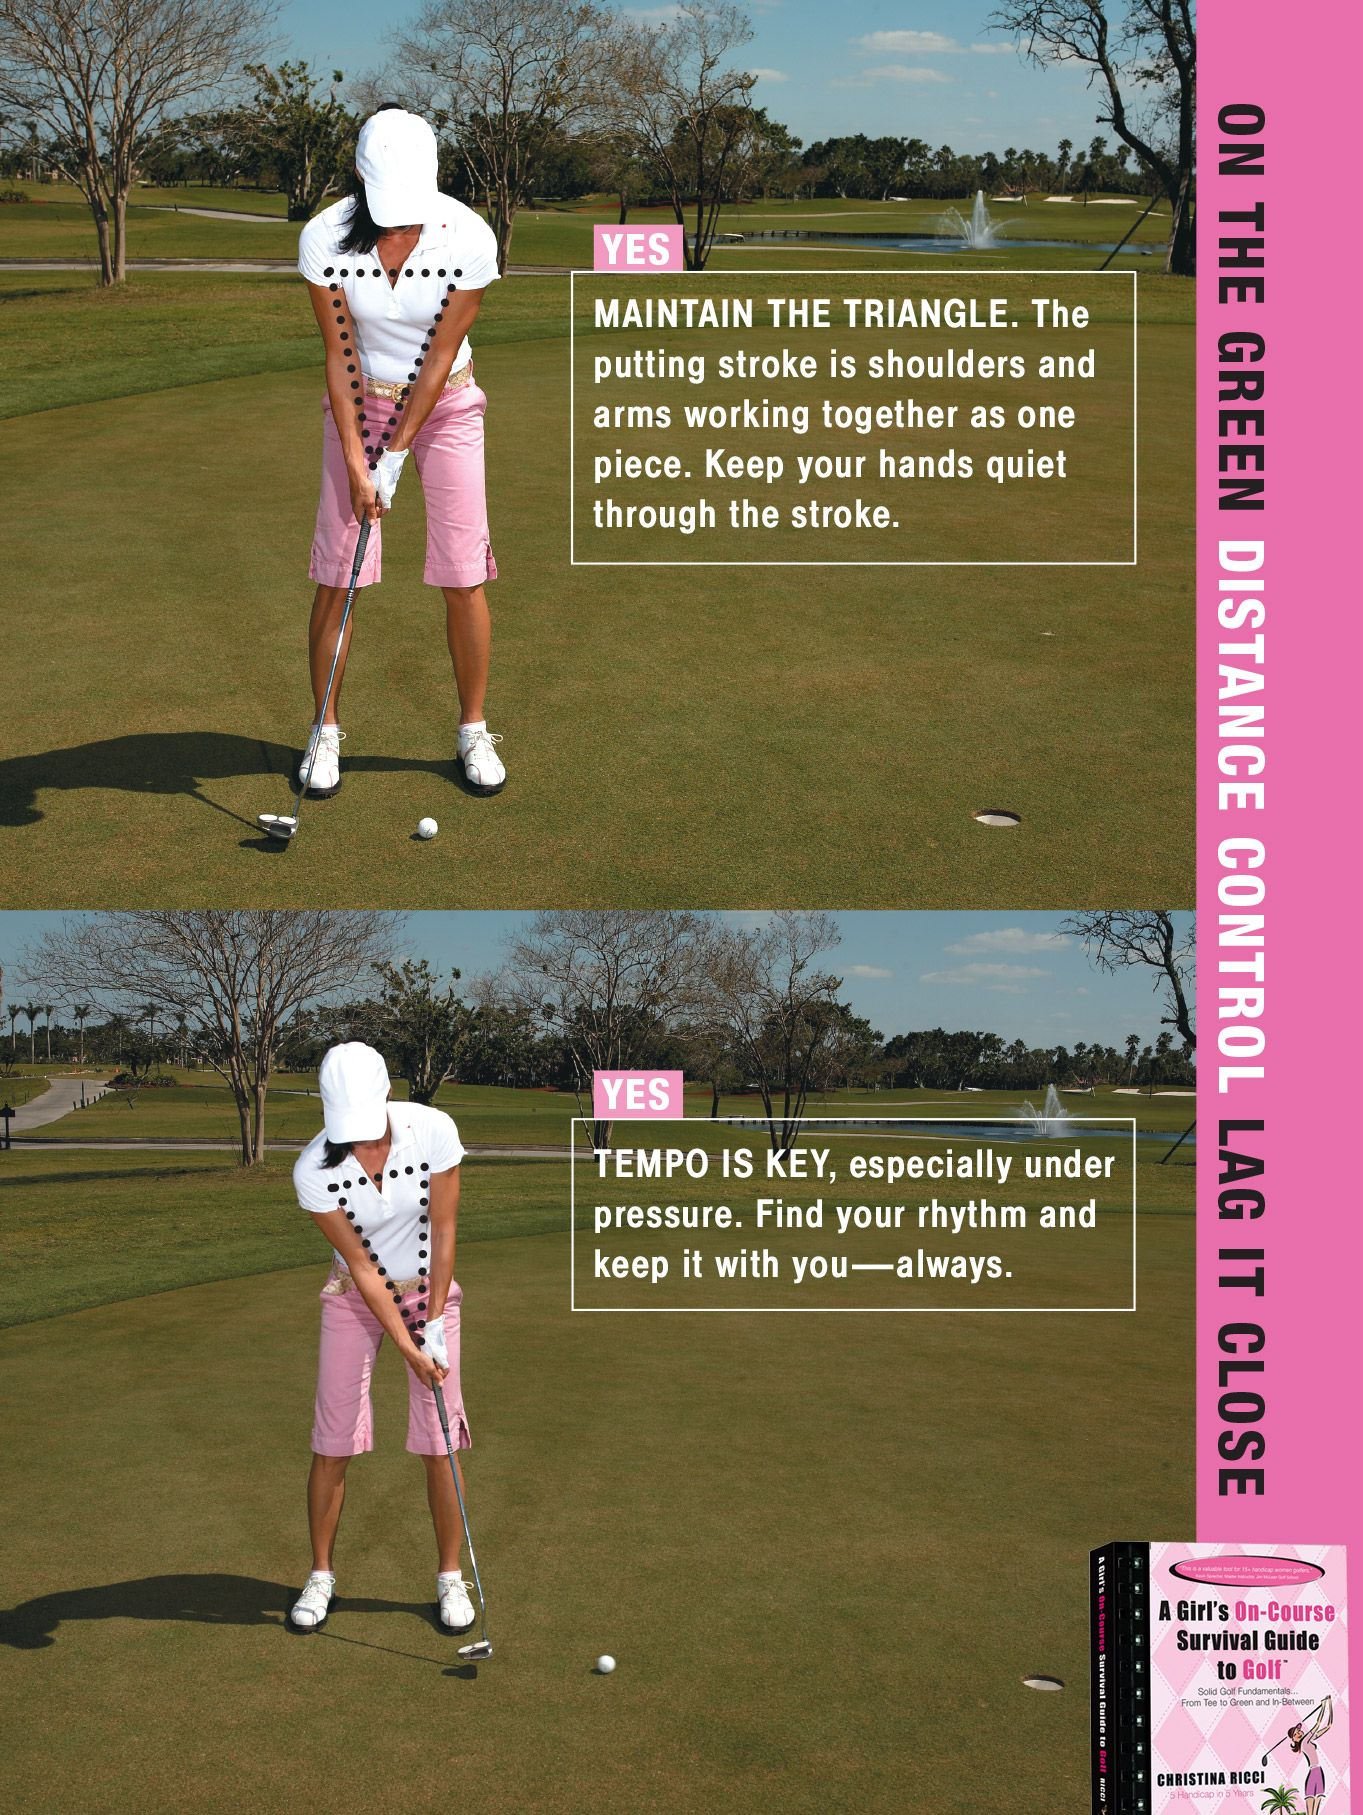 Maintain the triangle with smooth, consistent tempo for more putts in the  hole.